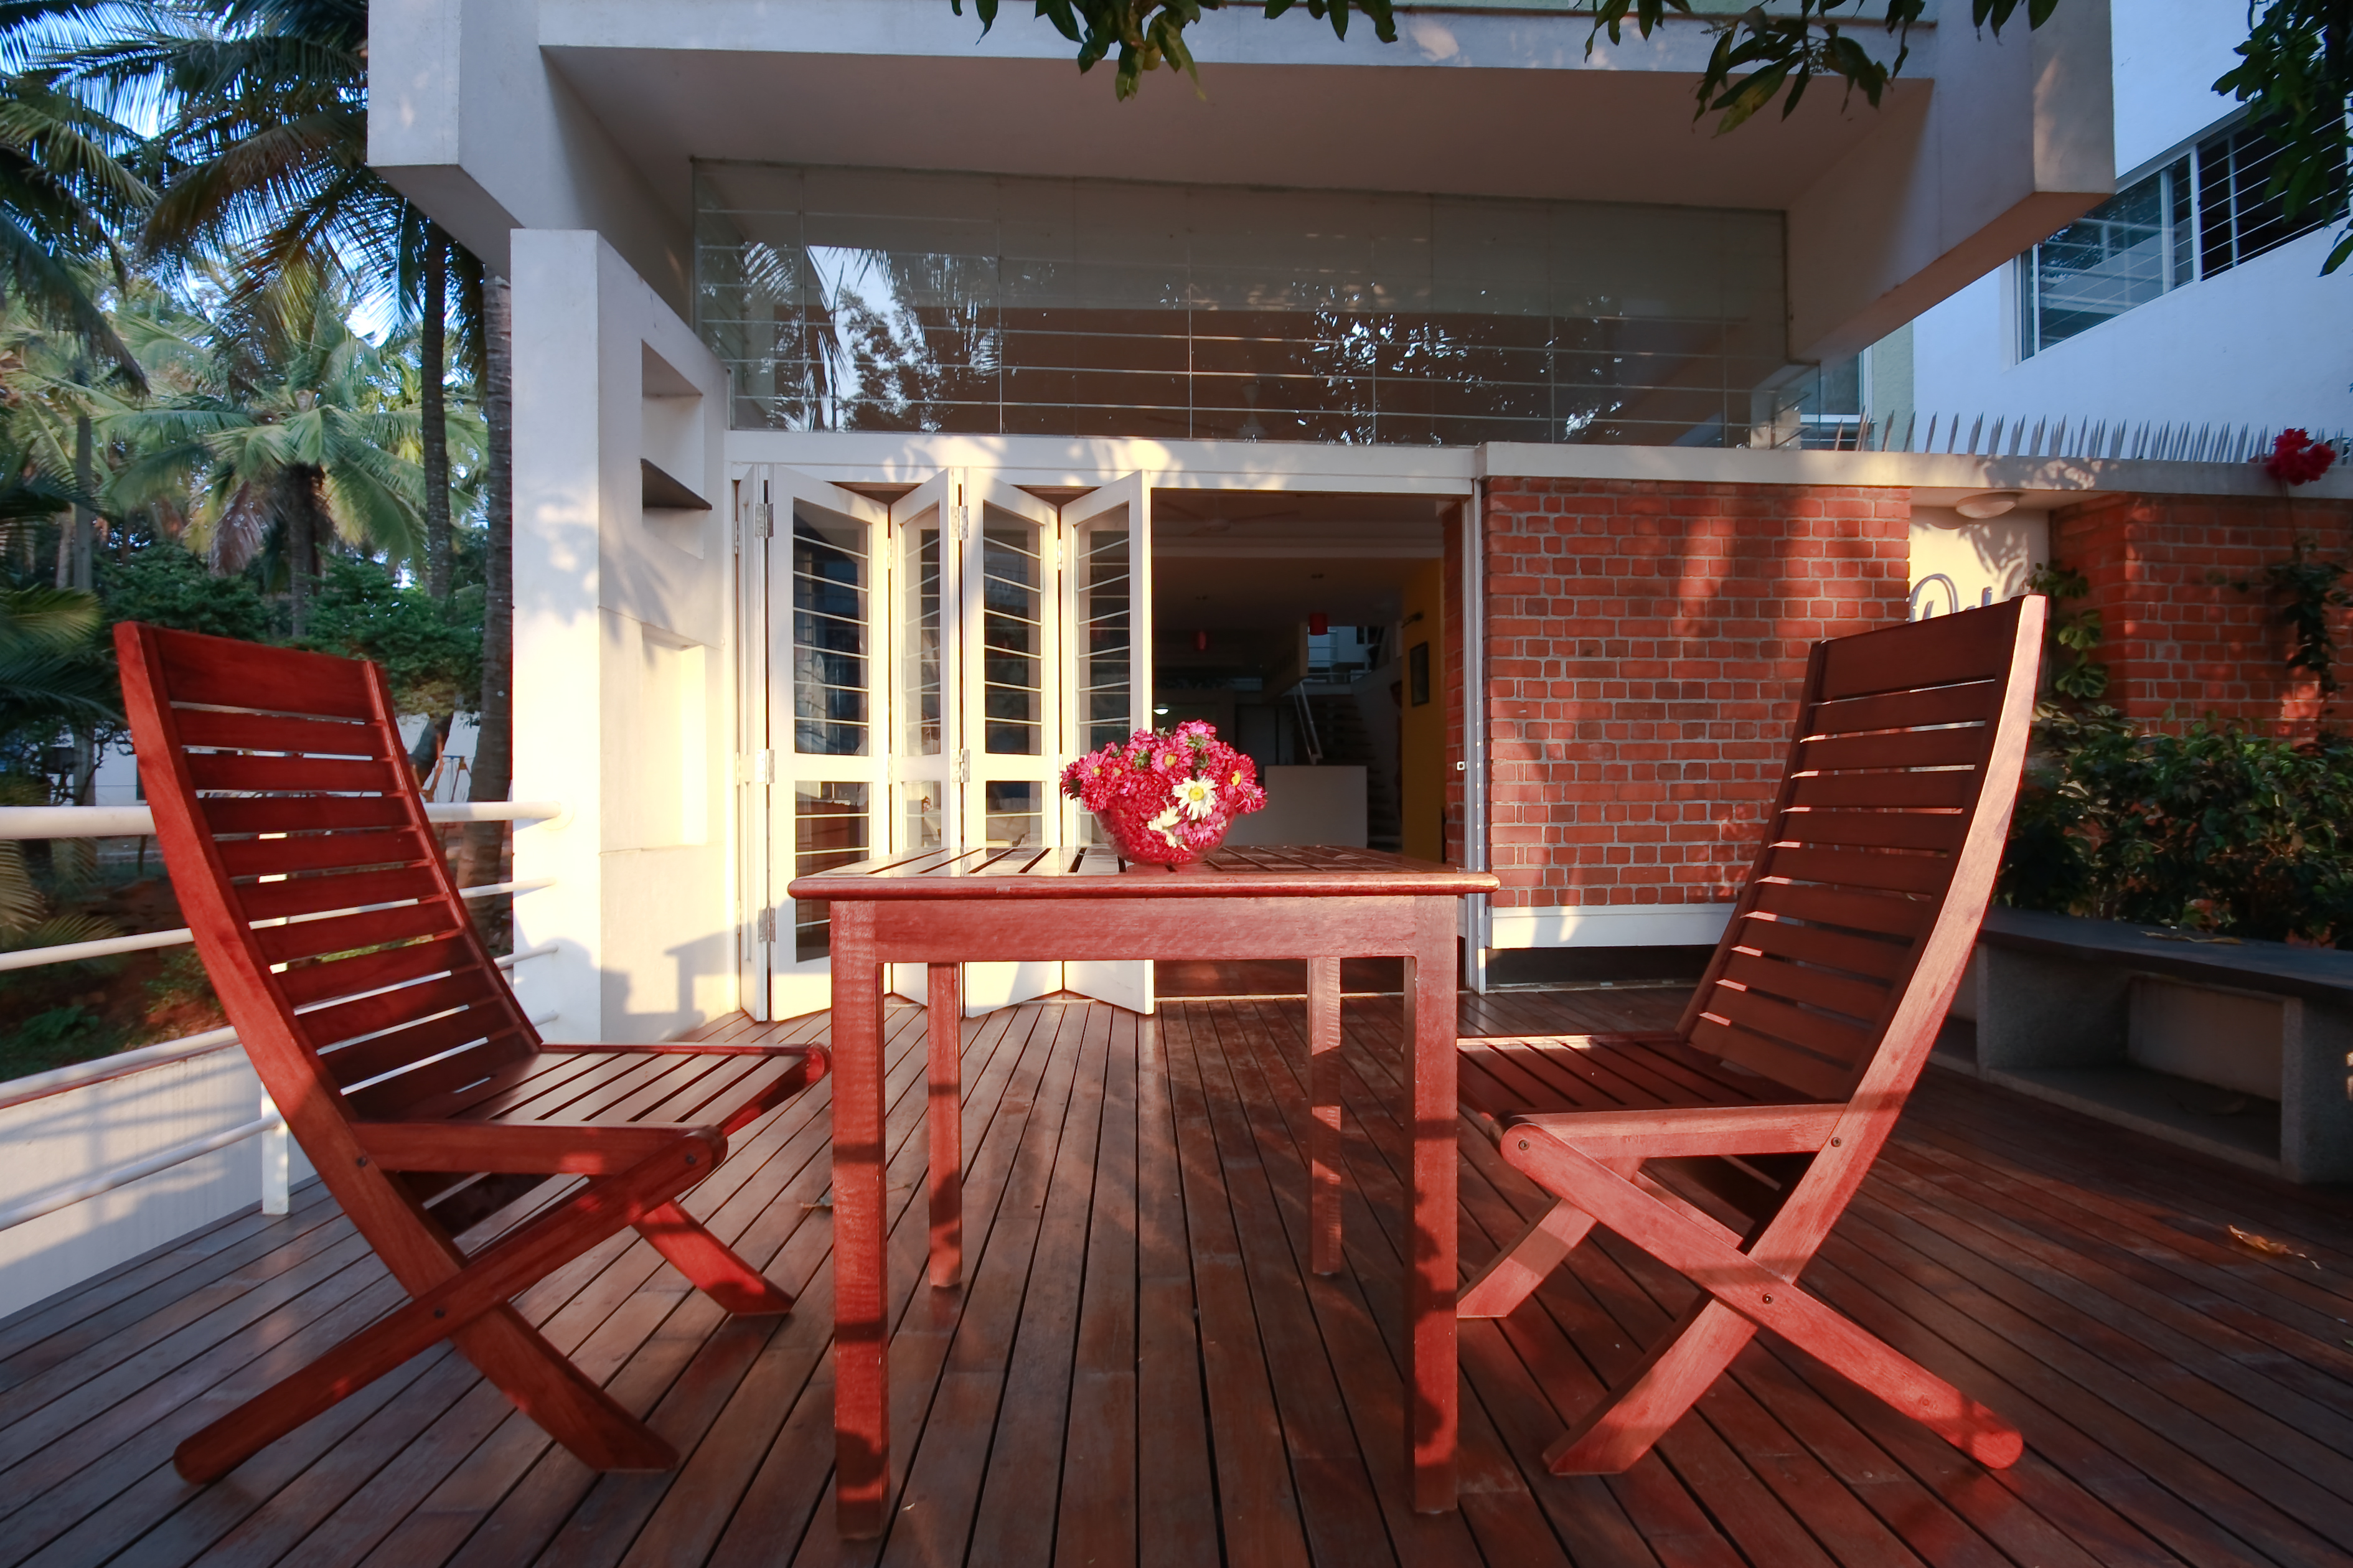 Here is the main patio as seen at dusk, with the expanse of glass upper wall clearly visible beneath the left balcony.